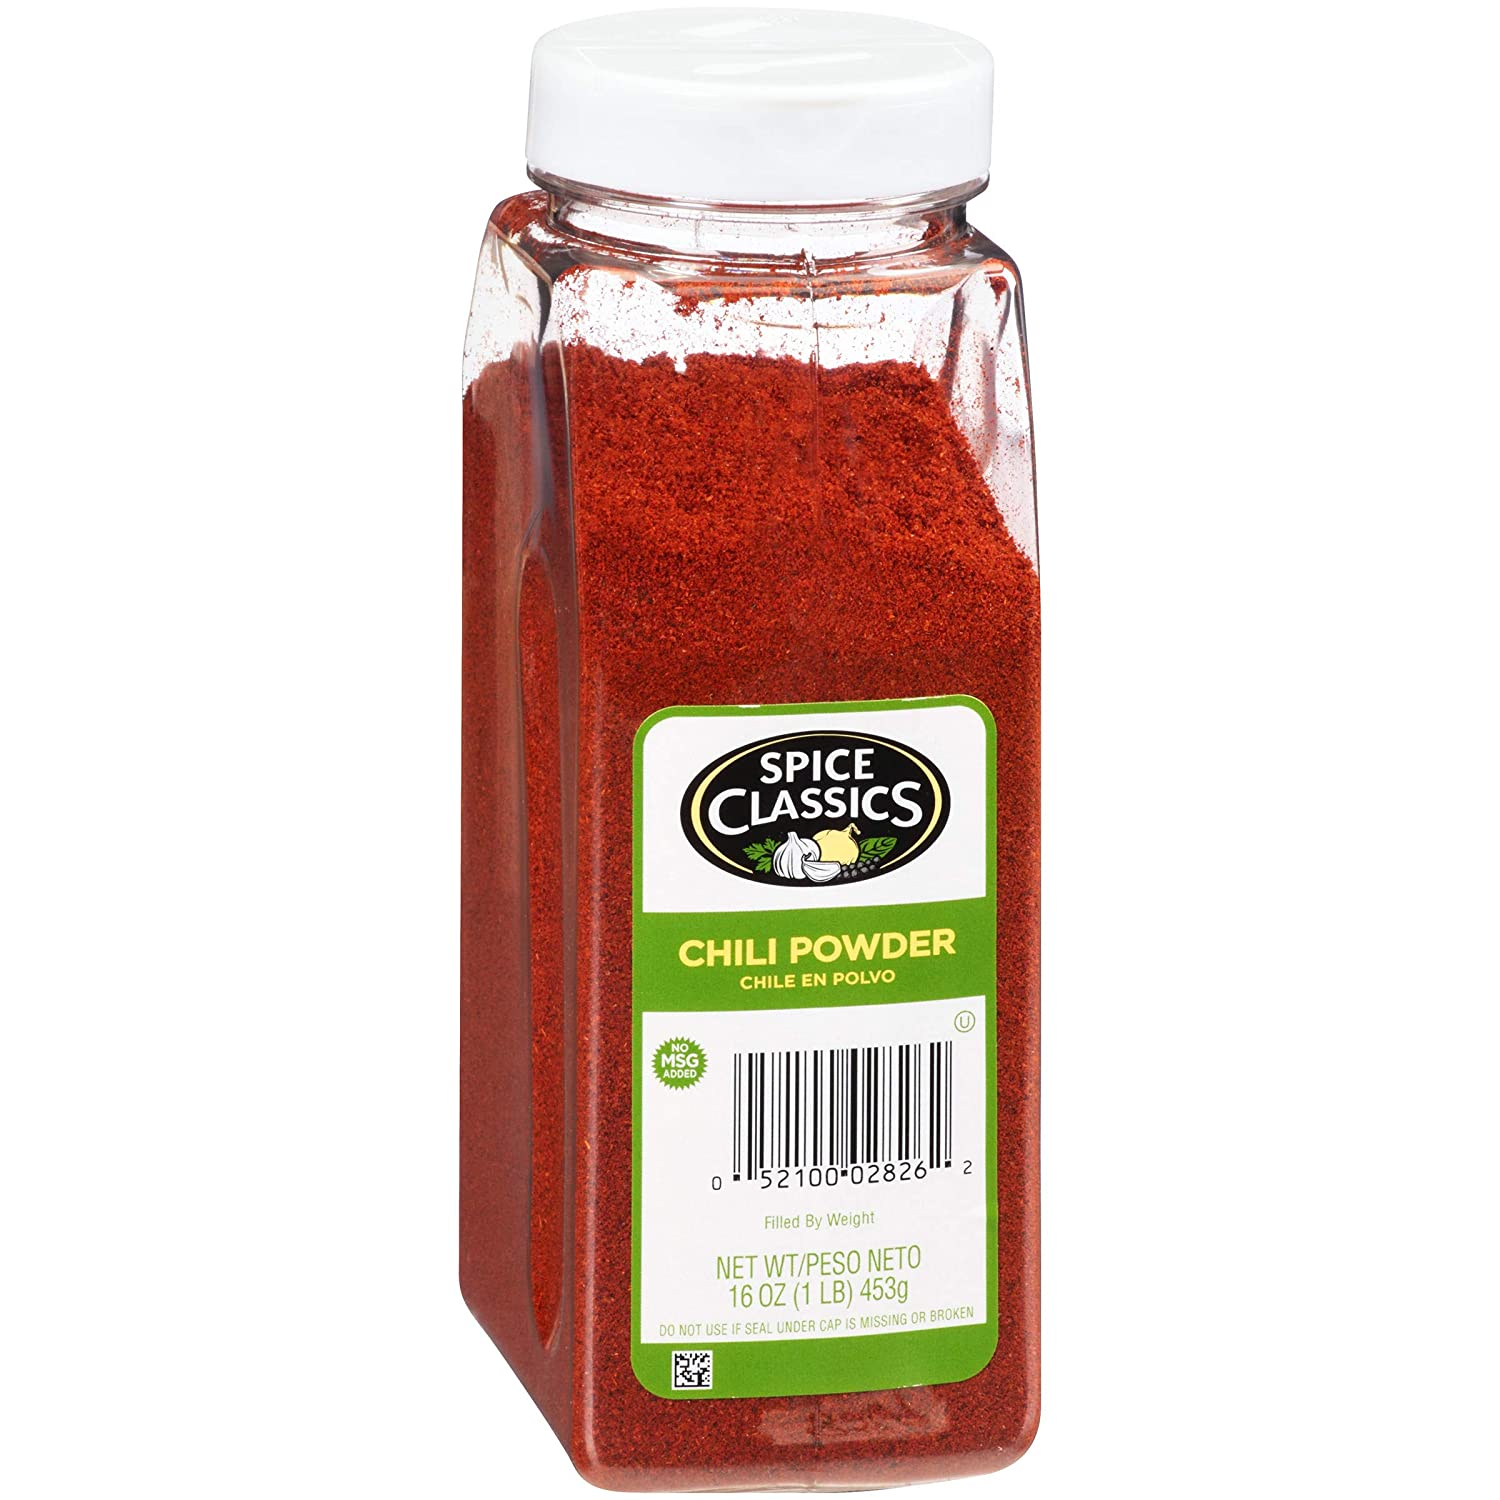 Spice Classics Chili Powder, 16 oz